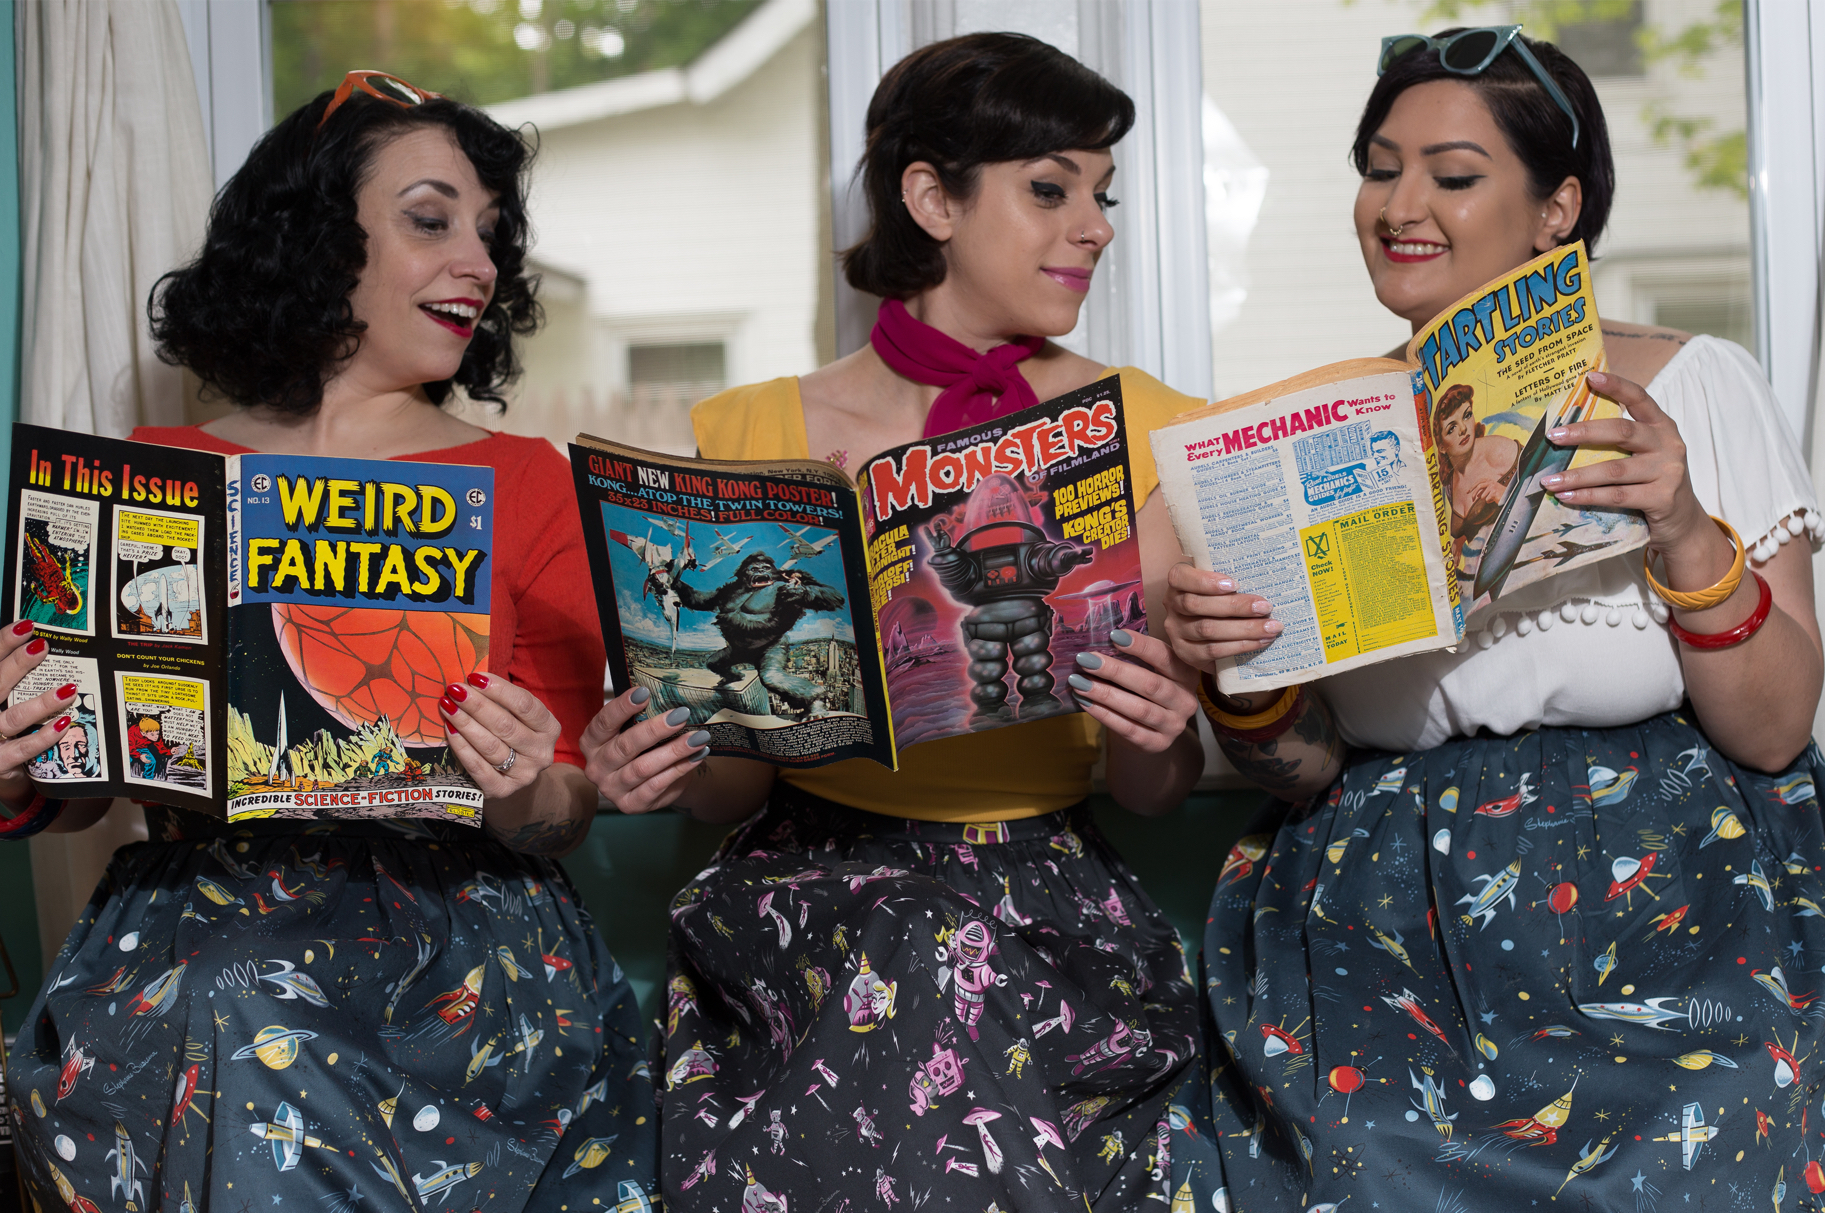 Photo of three people wearing Kitschy Witch Dresses and reading vintage sci-fi magazines